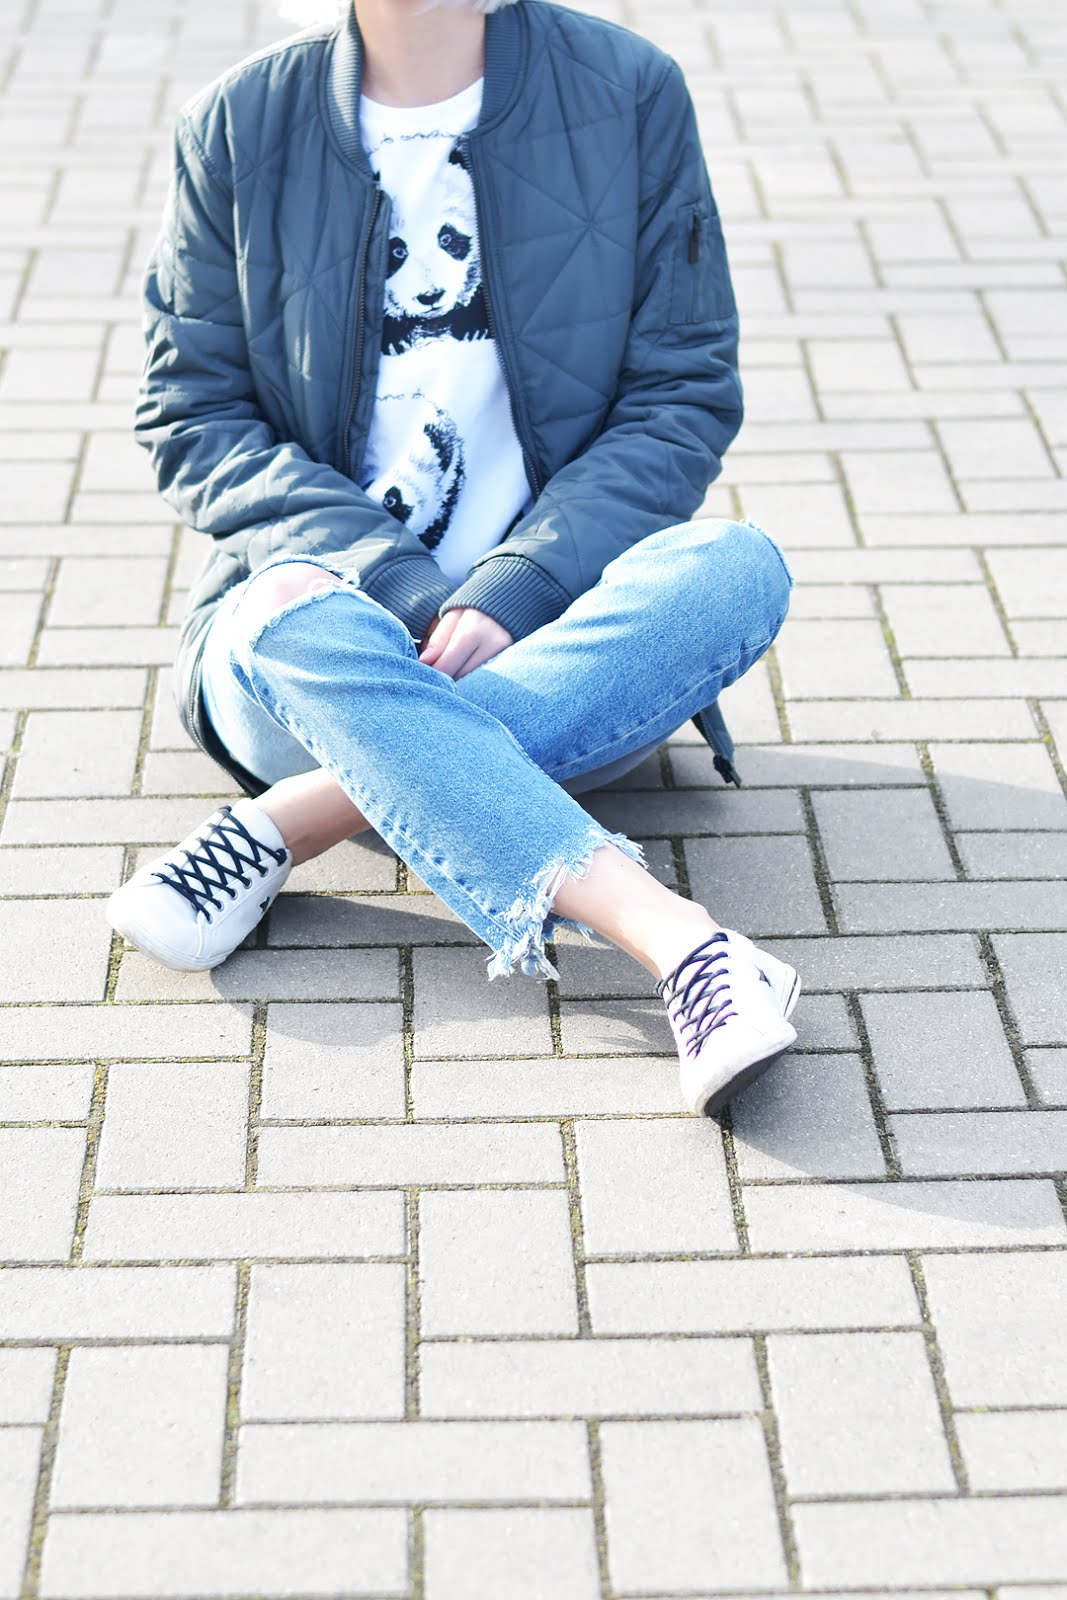 The sting, grey bomber jacket, acne studios inspired, budget, mr gugu & miss go, panda sweater, mango, joe, ripped jeans, converse sneakers, street style, belgian fashion blogger, belgische mode blogger, trends